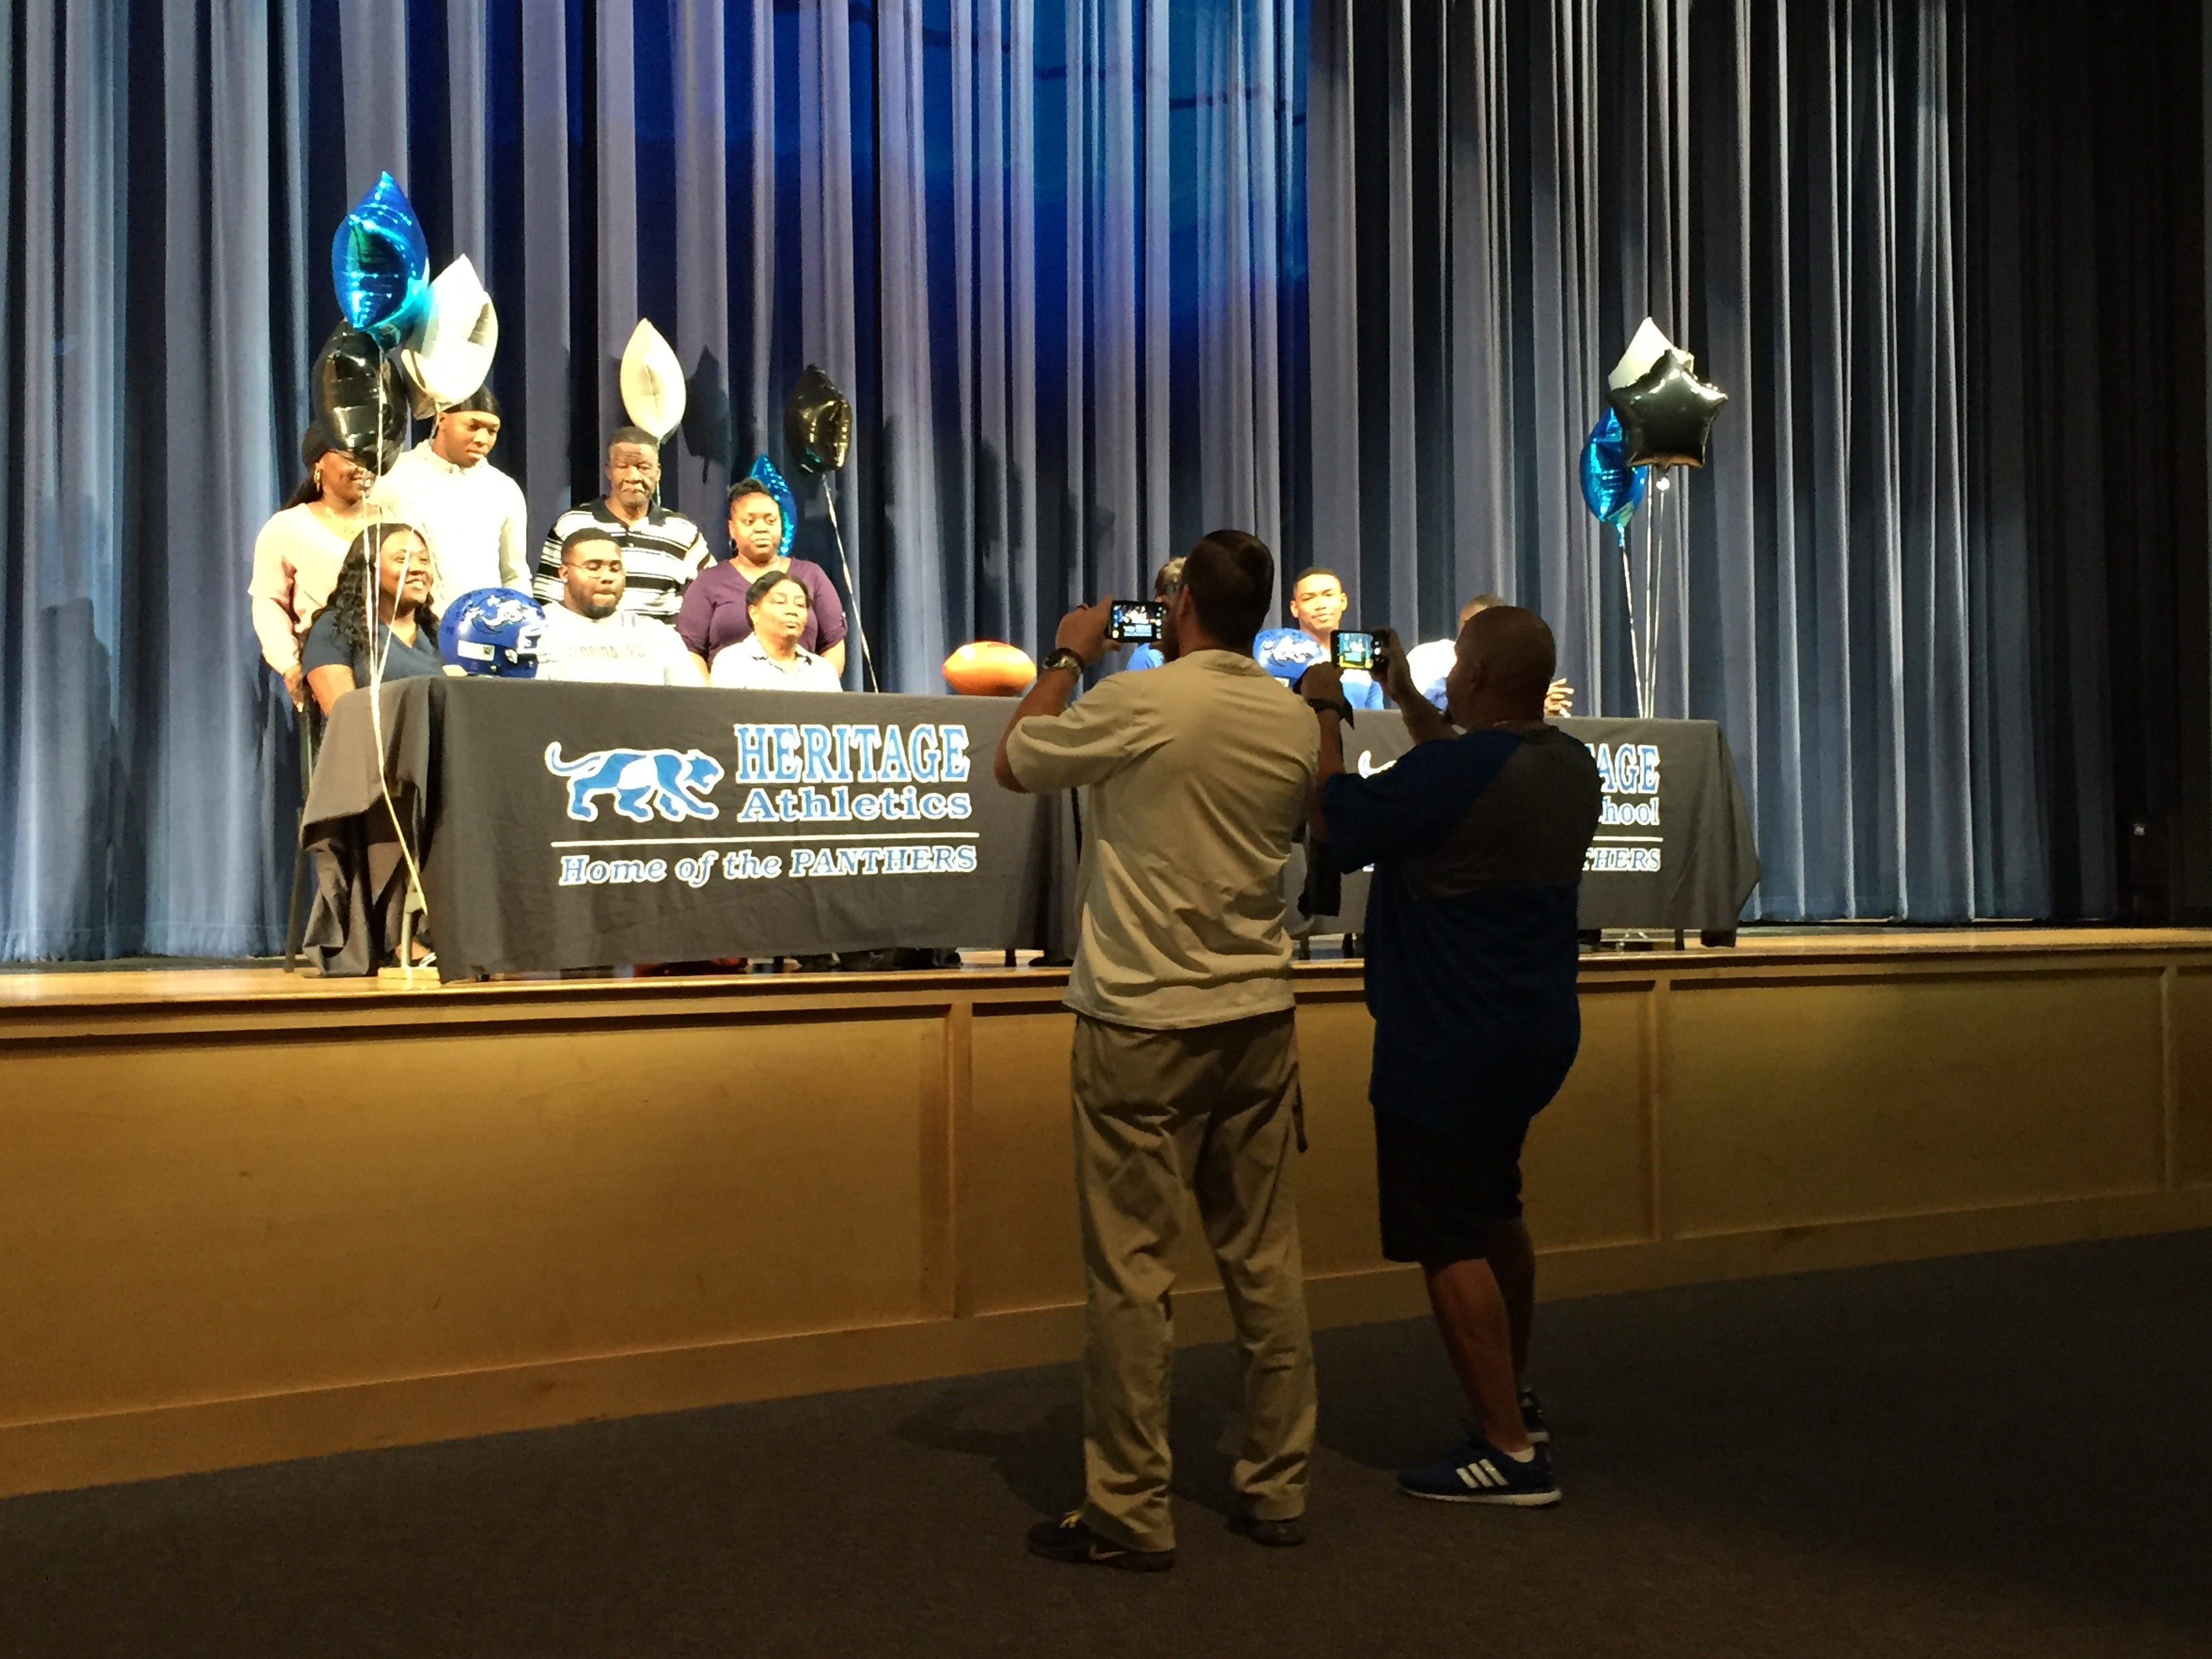 Signees pose for photos with family at Heritage on National Signing Day.